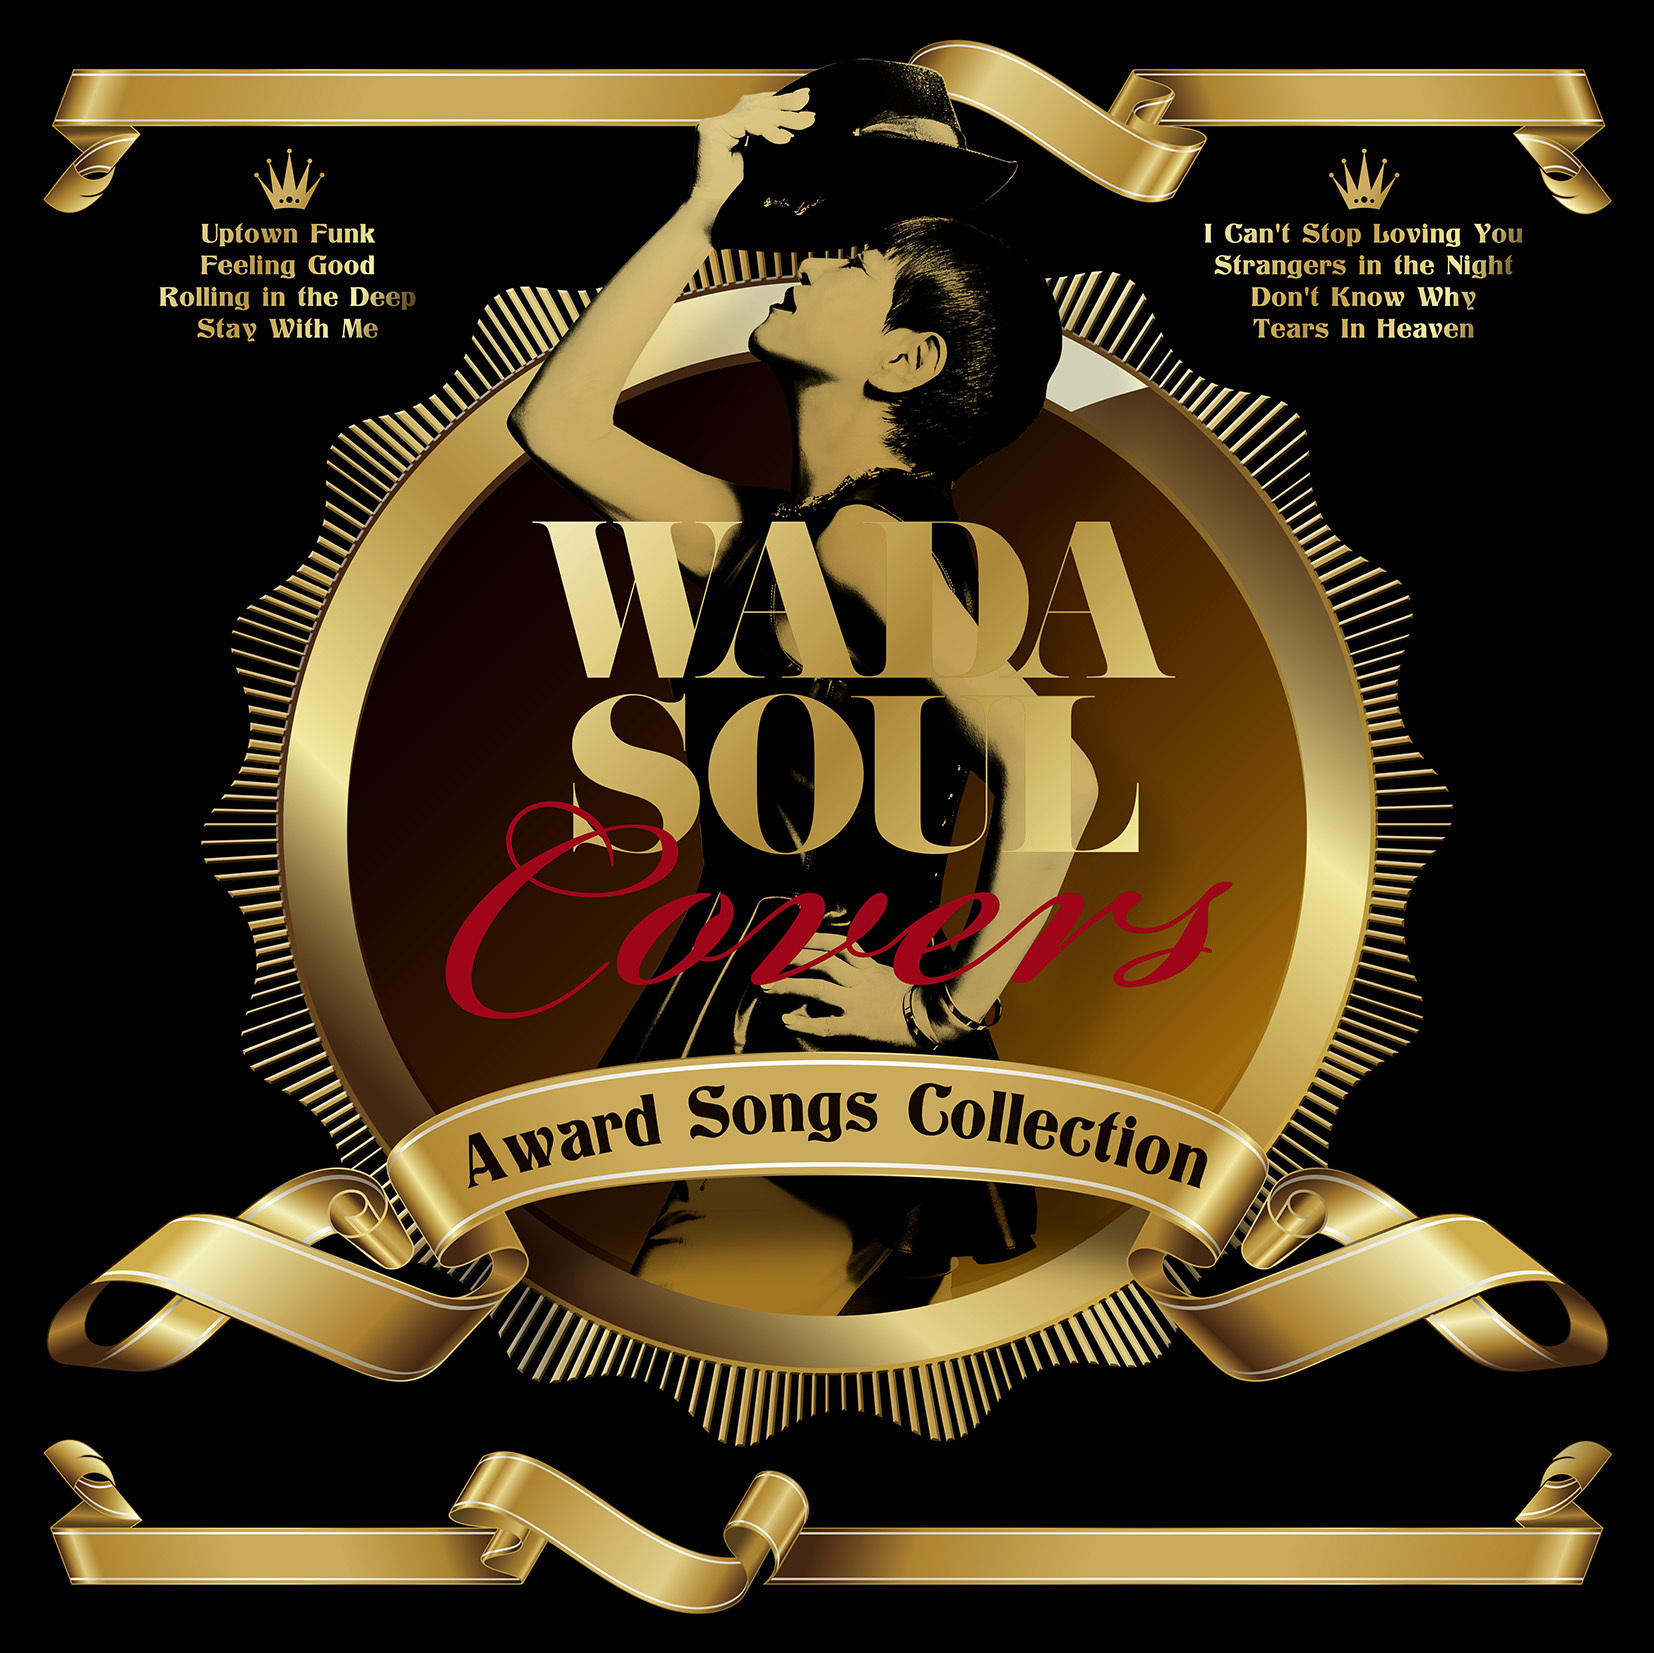 和田アキ子『WADASOUL COVERS ~Award Songs Collection』